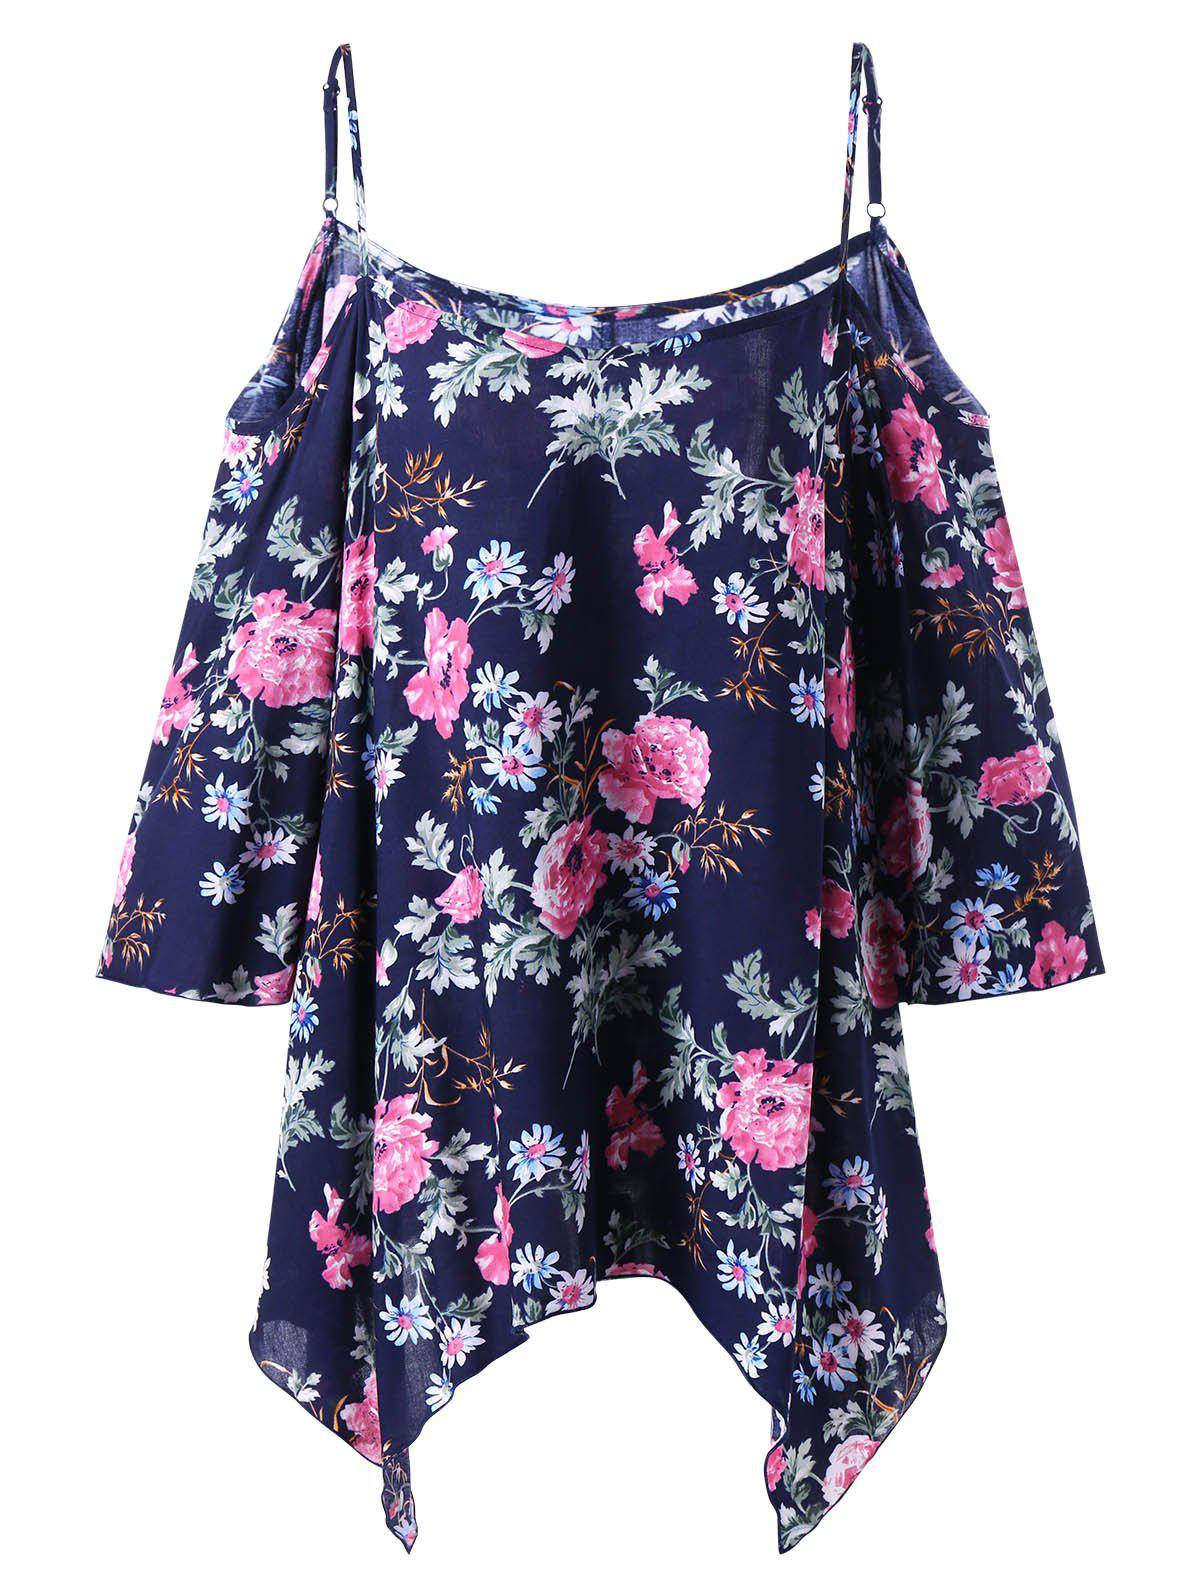 Plus Size Dew Shoulder Floral Handkerchief BlouseWOMEN<br><br>Size: 5XL; Color: DEEP BLUE; Material: Rayon; Shirt Length: Regular; Sleeve Length: Three Quarter; Collar: Spaghetti Strap; Style: Casual; Season: Fall,Spring,Summer; Pattern Type: Floral; Weight: 0.1700kg; Package Contents: 1 x Blouse;